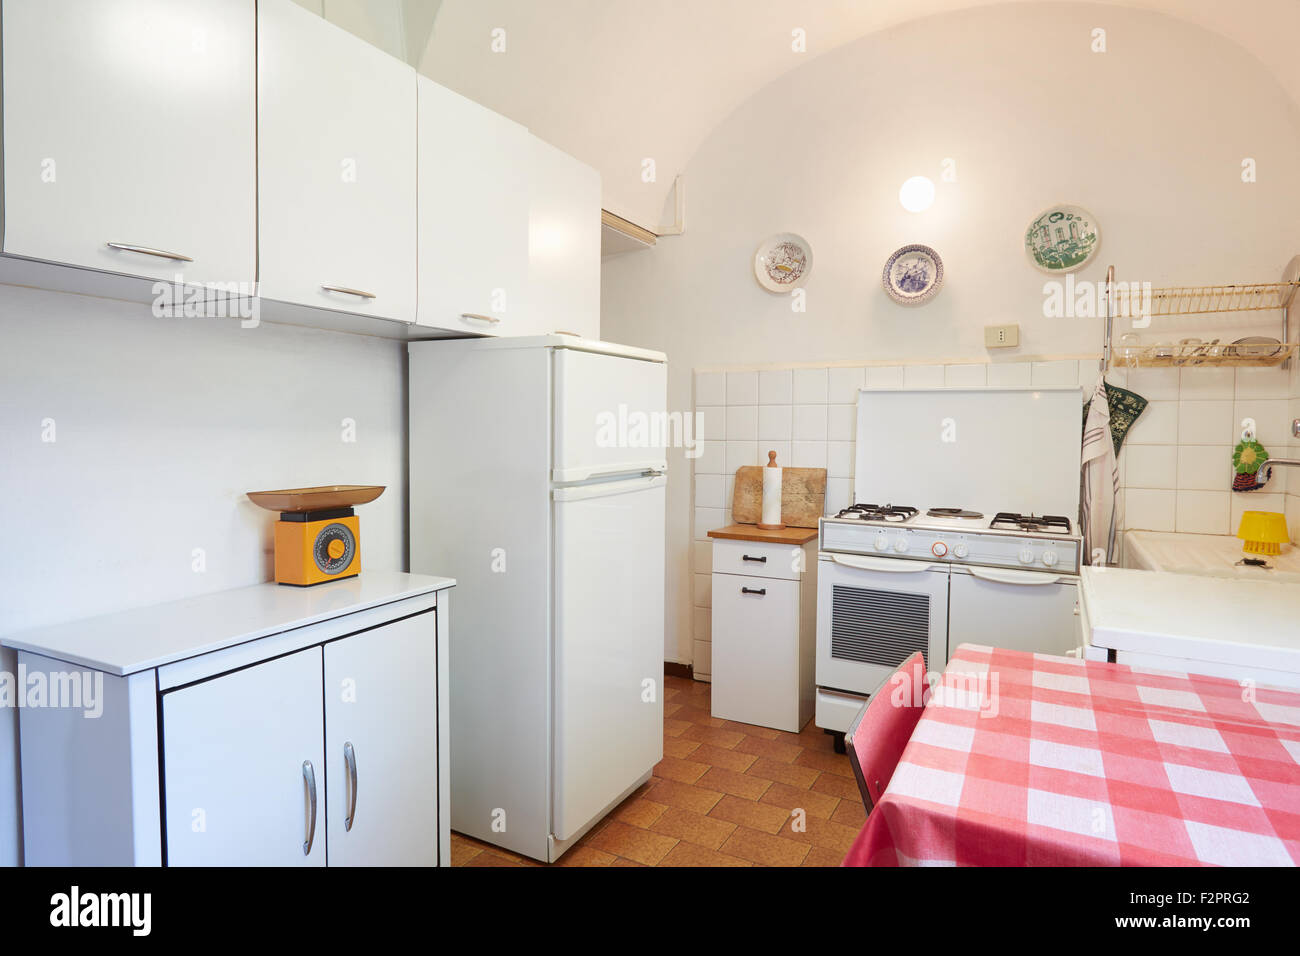 Old kitchen in normal house in Italy - Stock Image